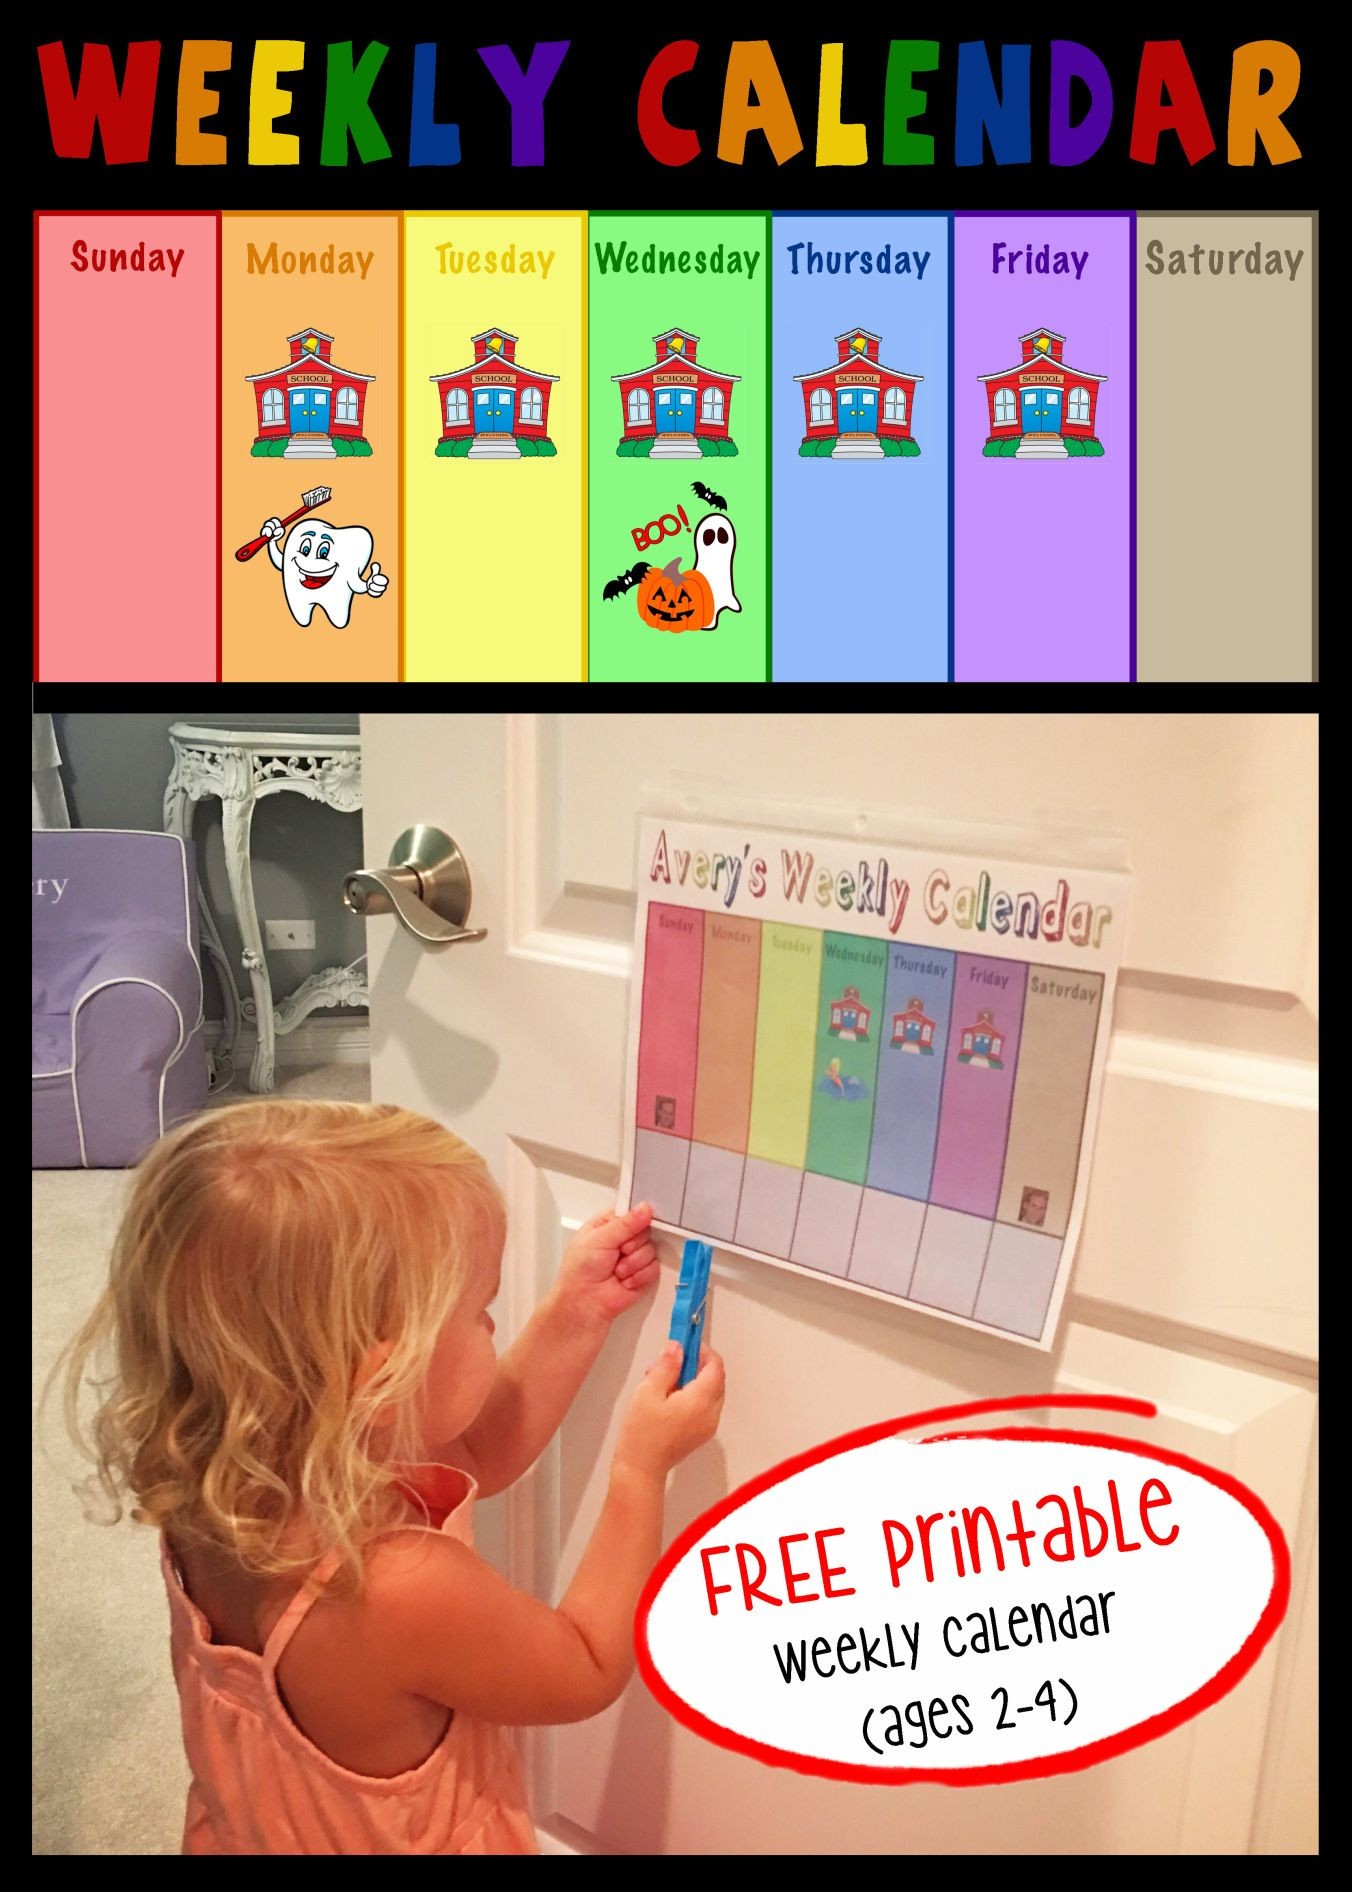 March Calendar Kids Más Recientes Free Printable toddler Weekly Calendar Projectsinparenting Of March Calendar Kids Más Actual Free Calendar Template 2018 ¢Ë†Å¡ Calendar Powerpoint Template Fresh